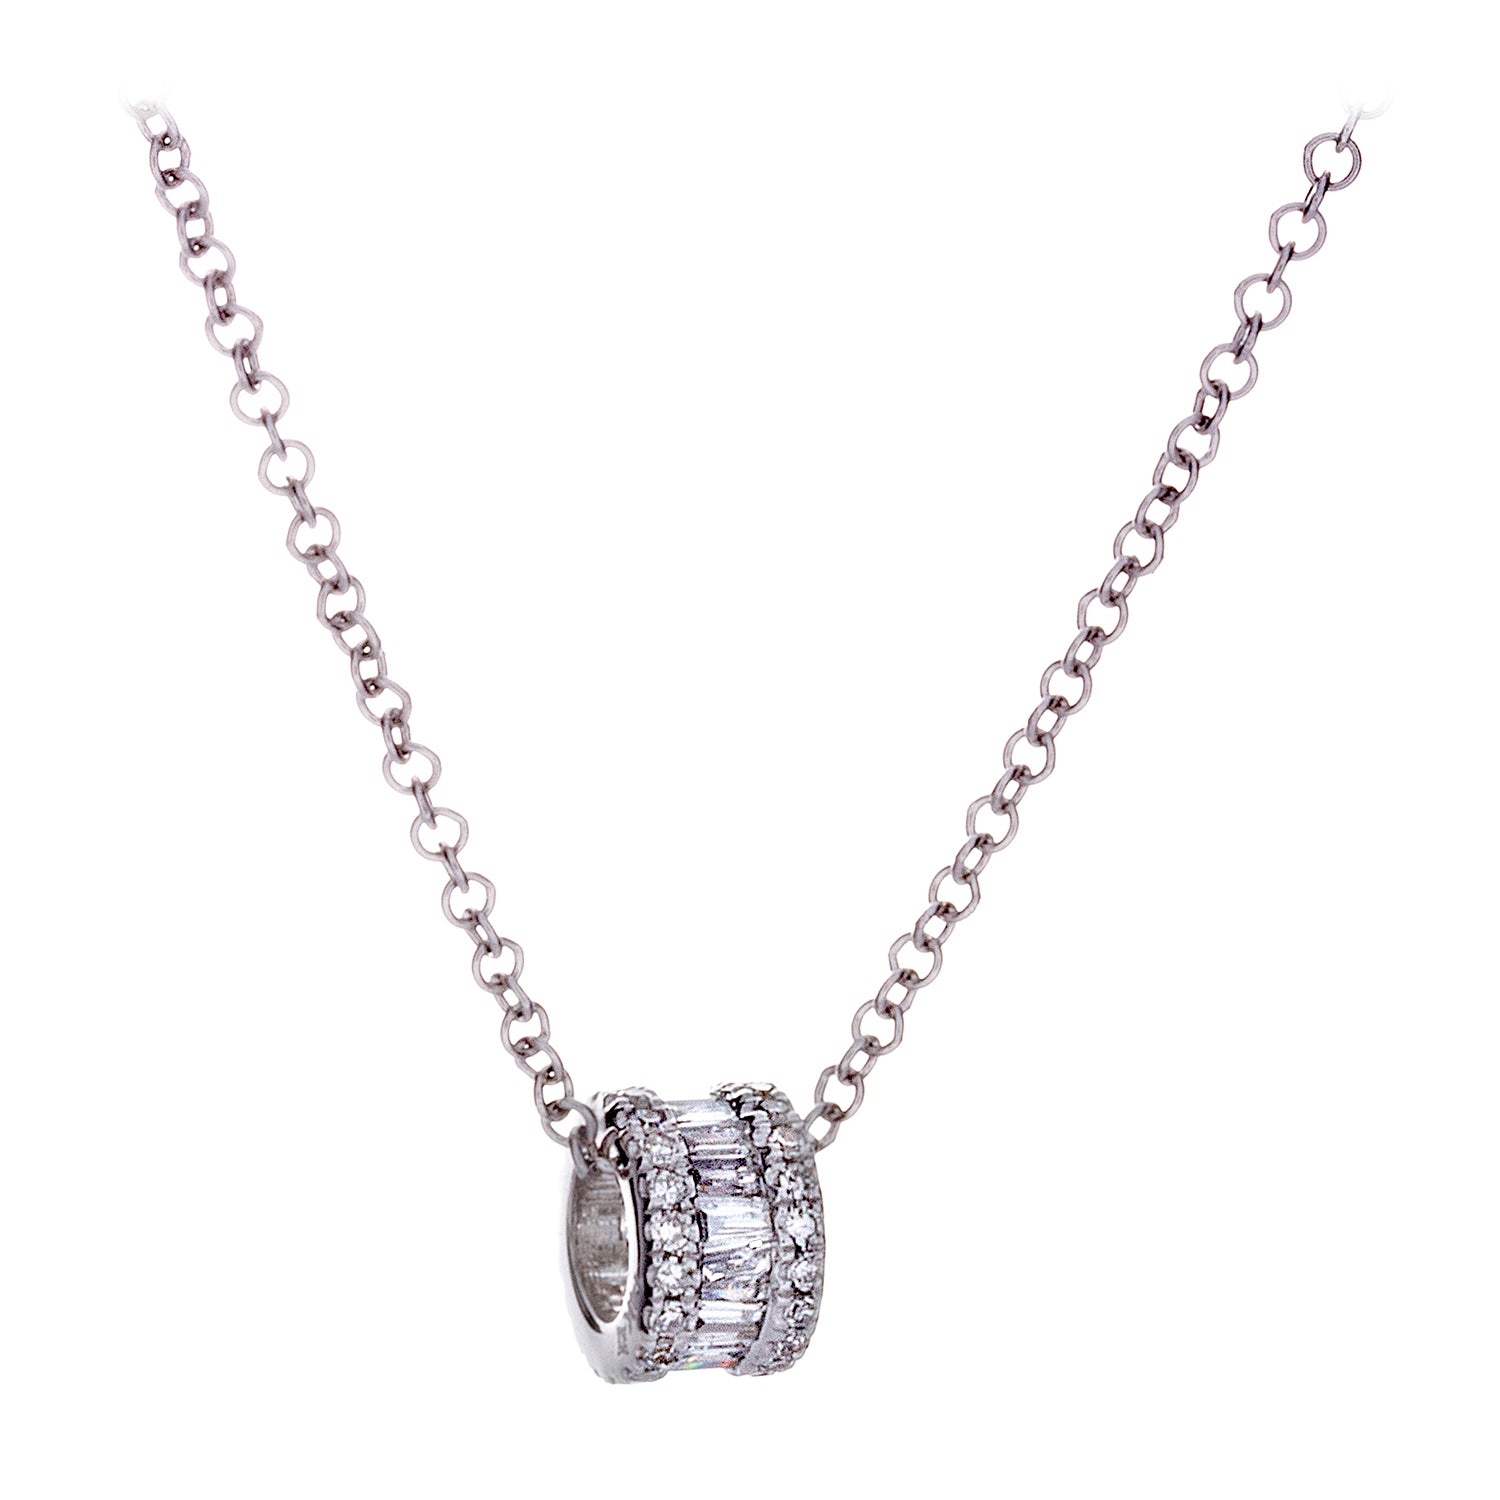 Diamonds White Gold Necklace - SOLD/CAN BE SPECIAL ORDERED WITH 4-6 WEEKS DELIVERY TIME FRAME